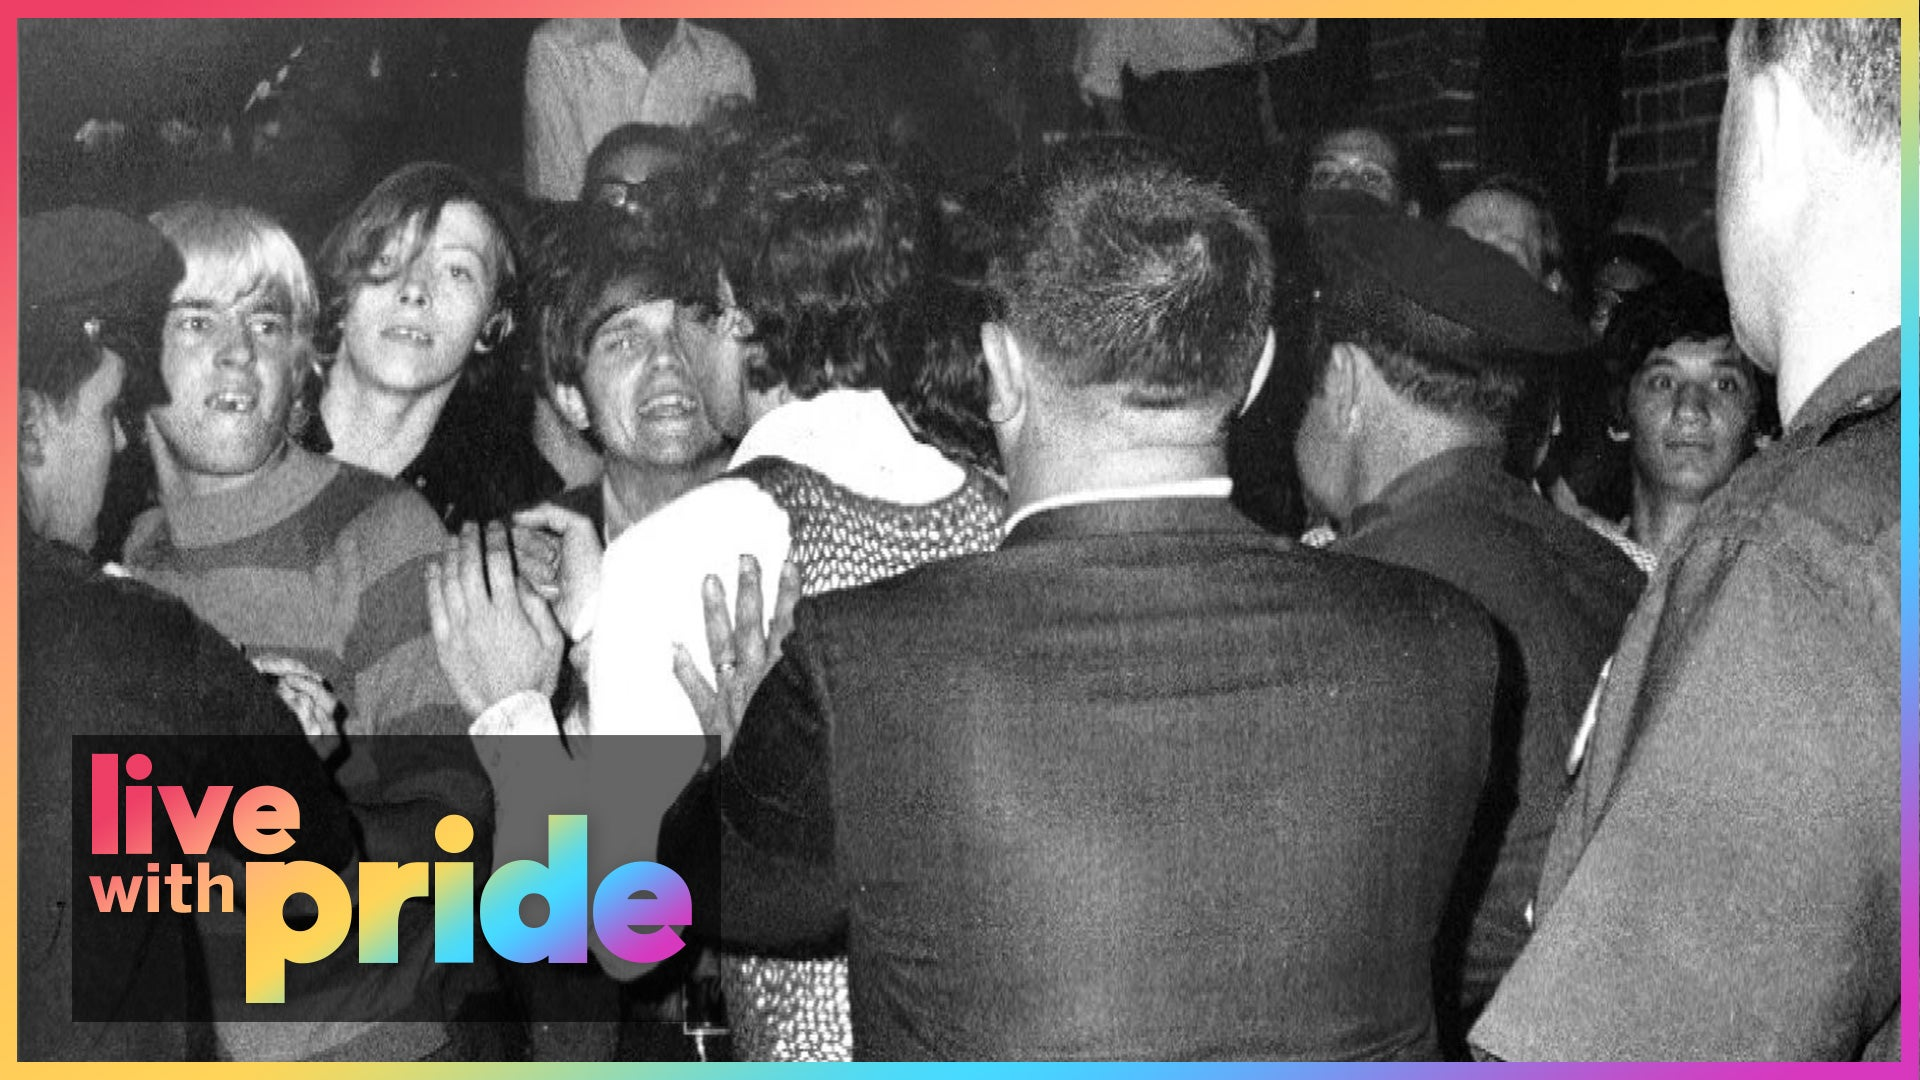 LGBTQ Activist Mark Segal Recounts His Experience at the 1969 Stonewall Riots | Live With Pride